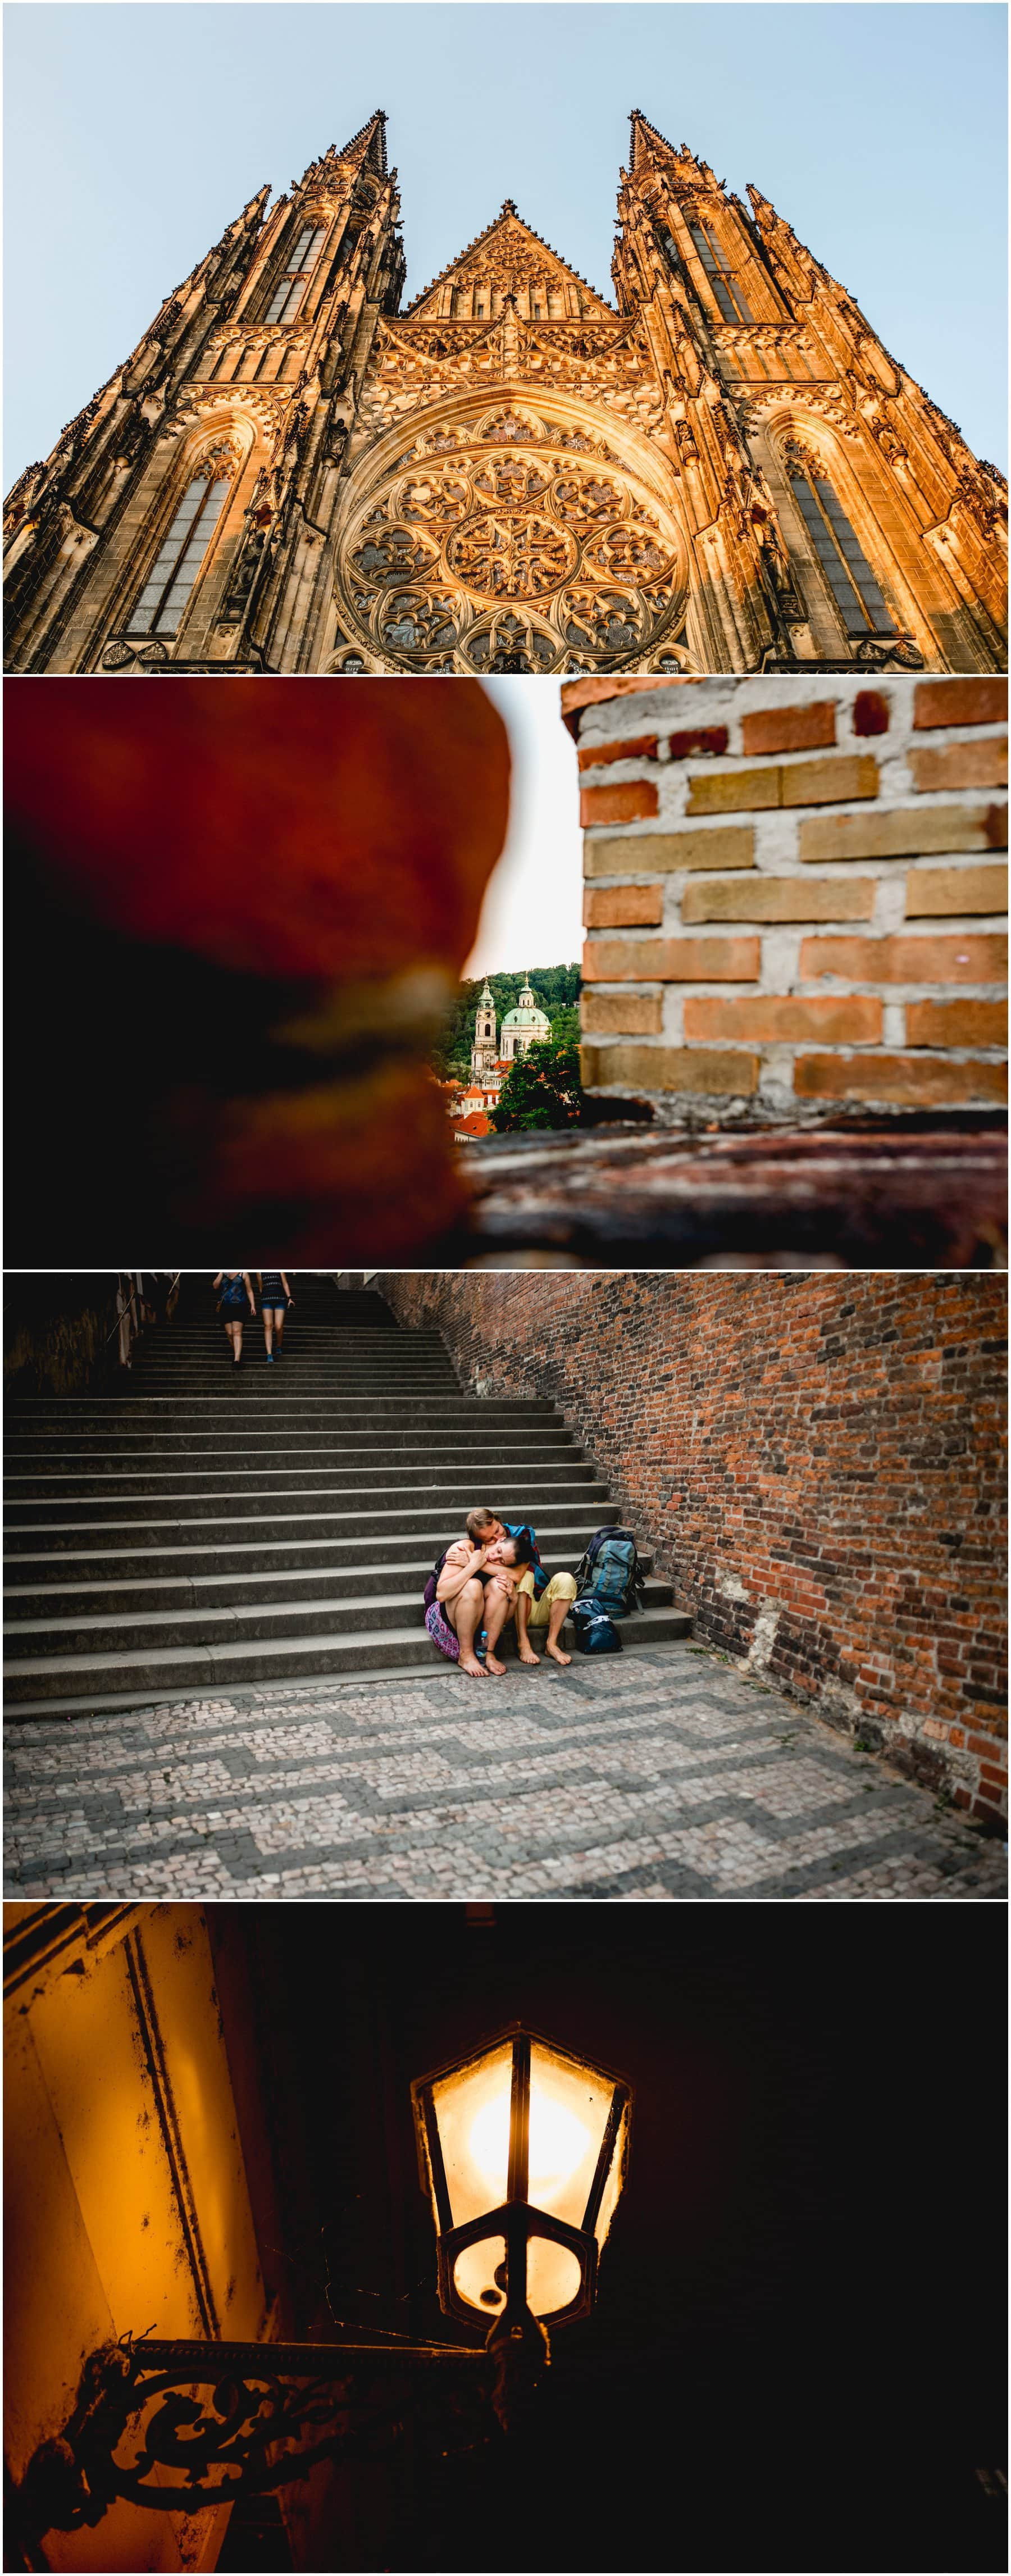 Prague Travel and Street Photography by Lisa Carpenter Photography, West Midlands Wedding and Travel photographer shooting in the UK and destination wedding photos.